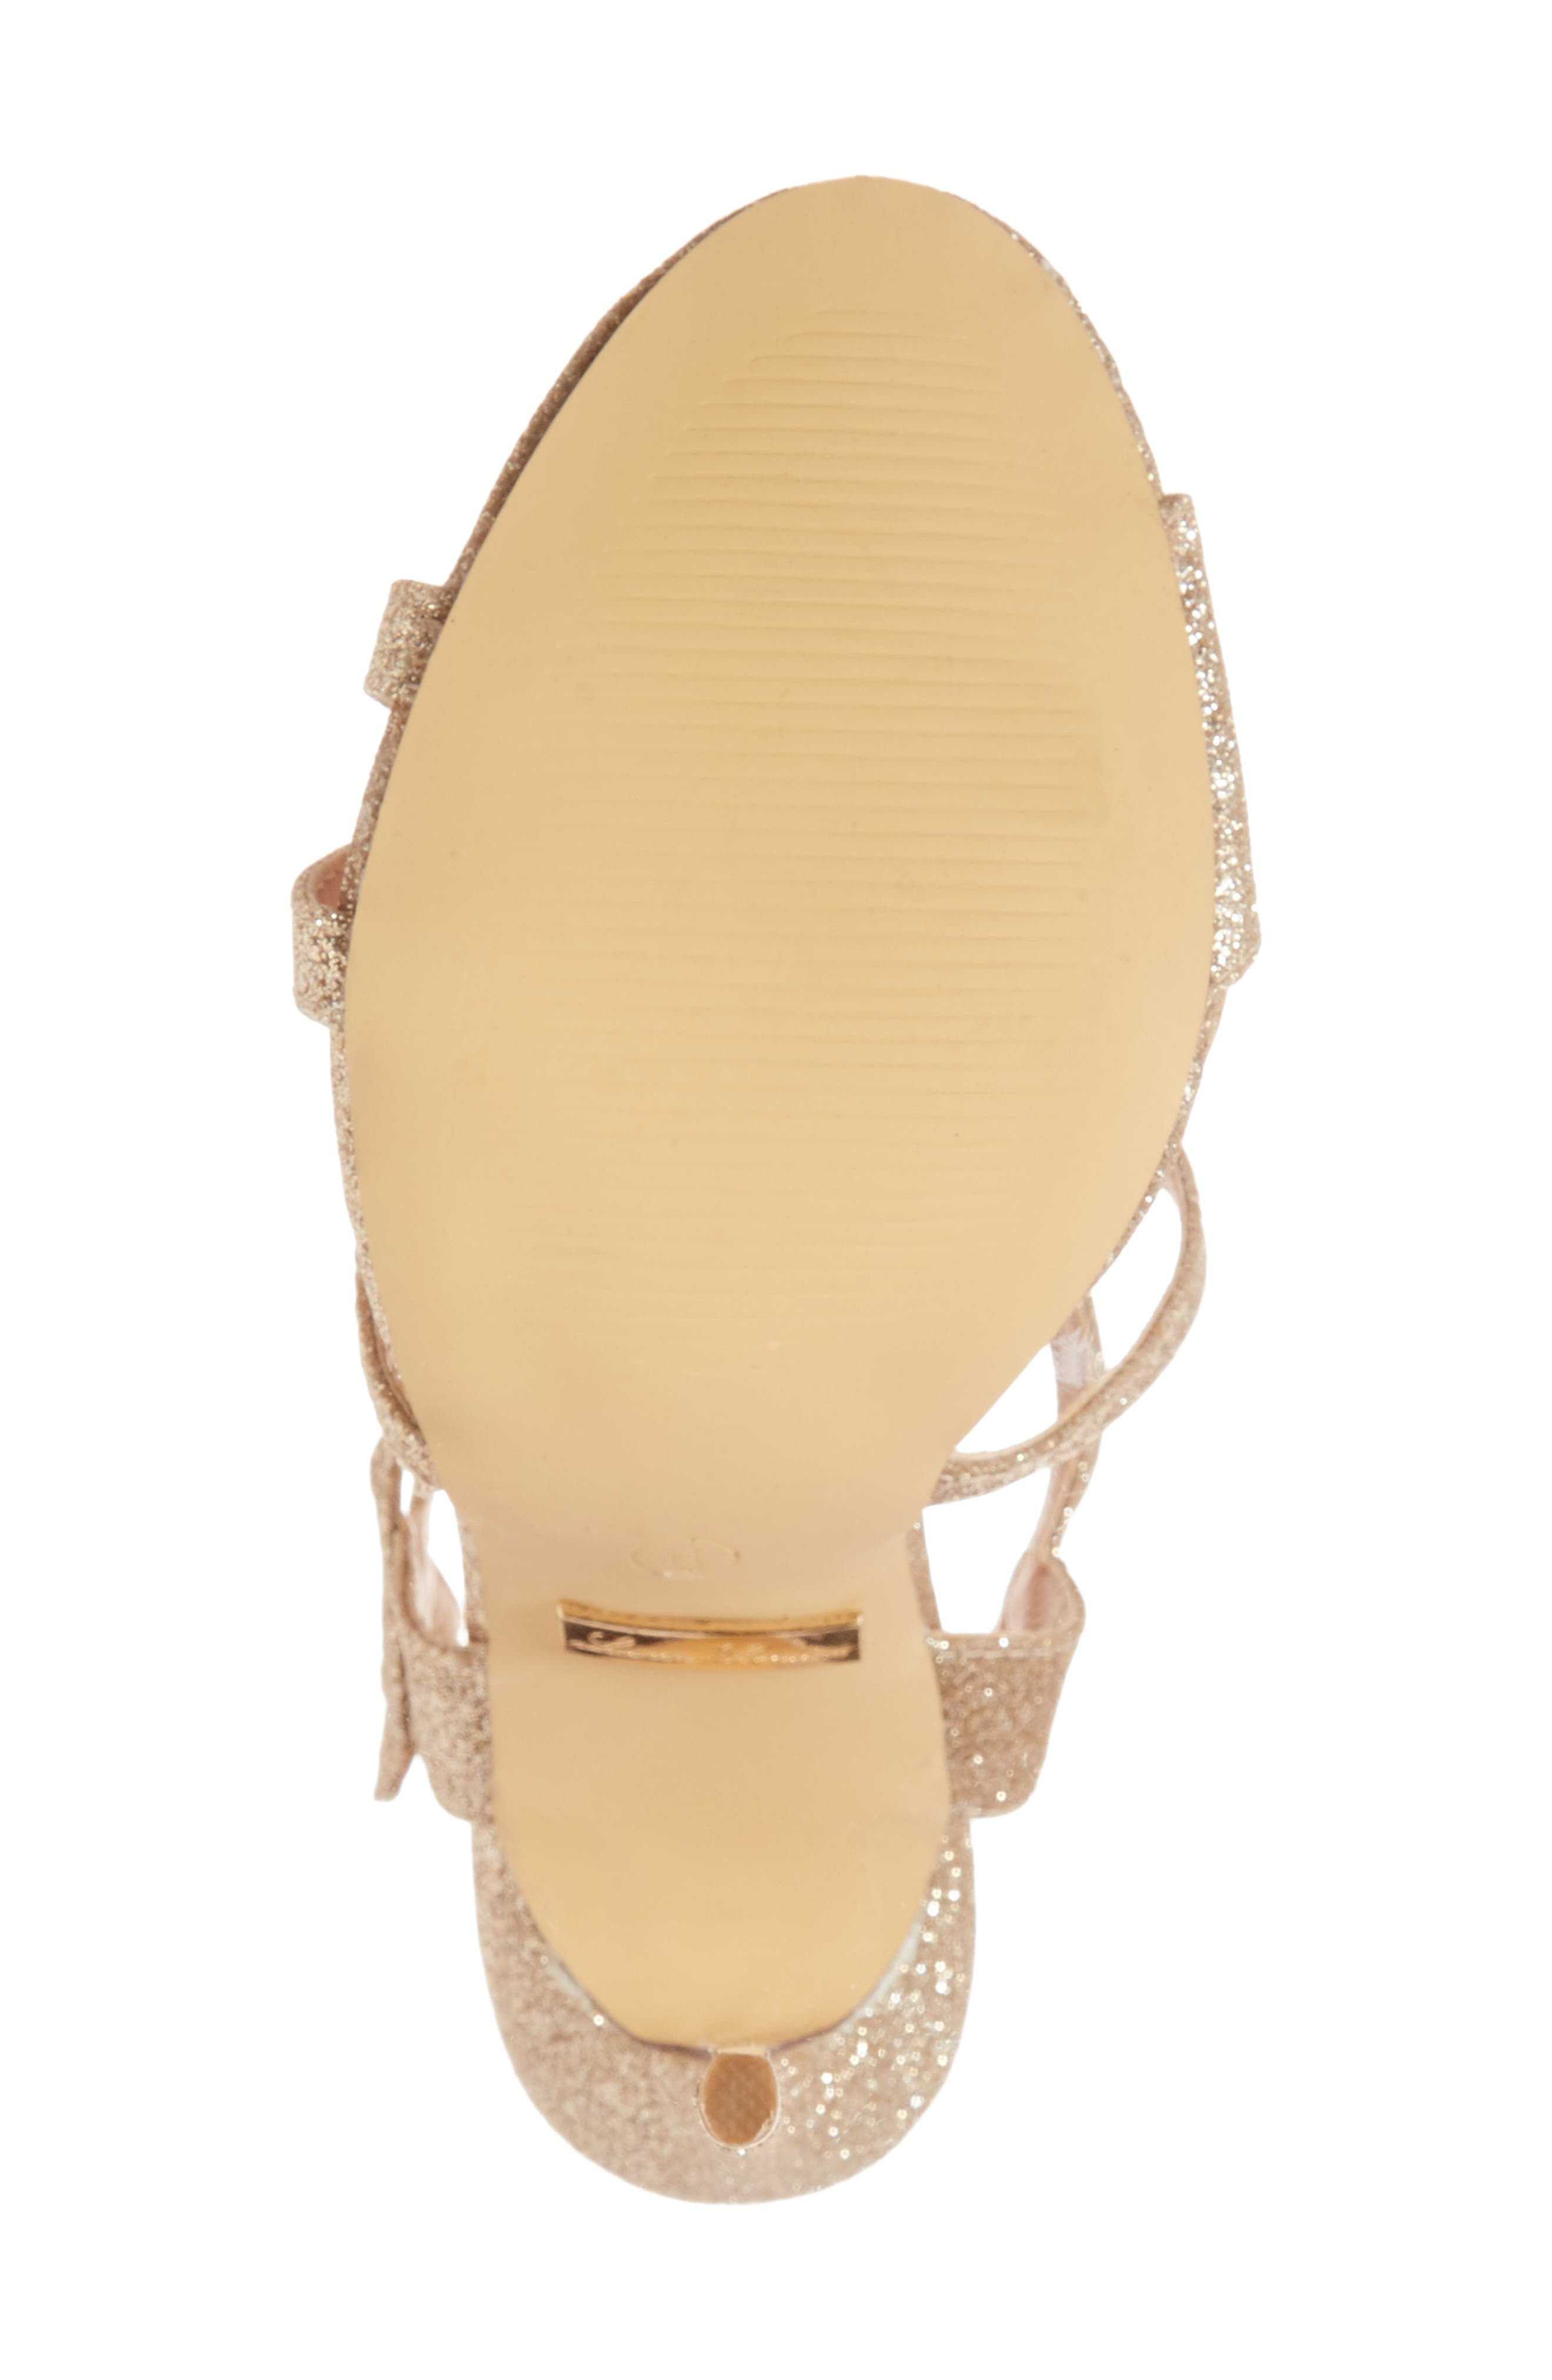 LAUREN LORRAINE, Gidget Sandal, Alternate thumbnail 6, color, NUDE FABRIC